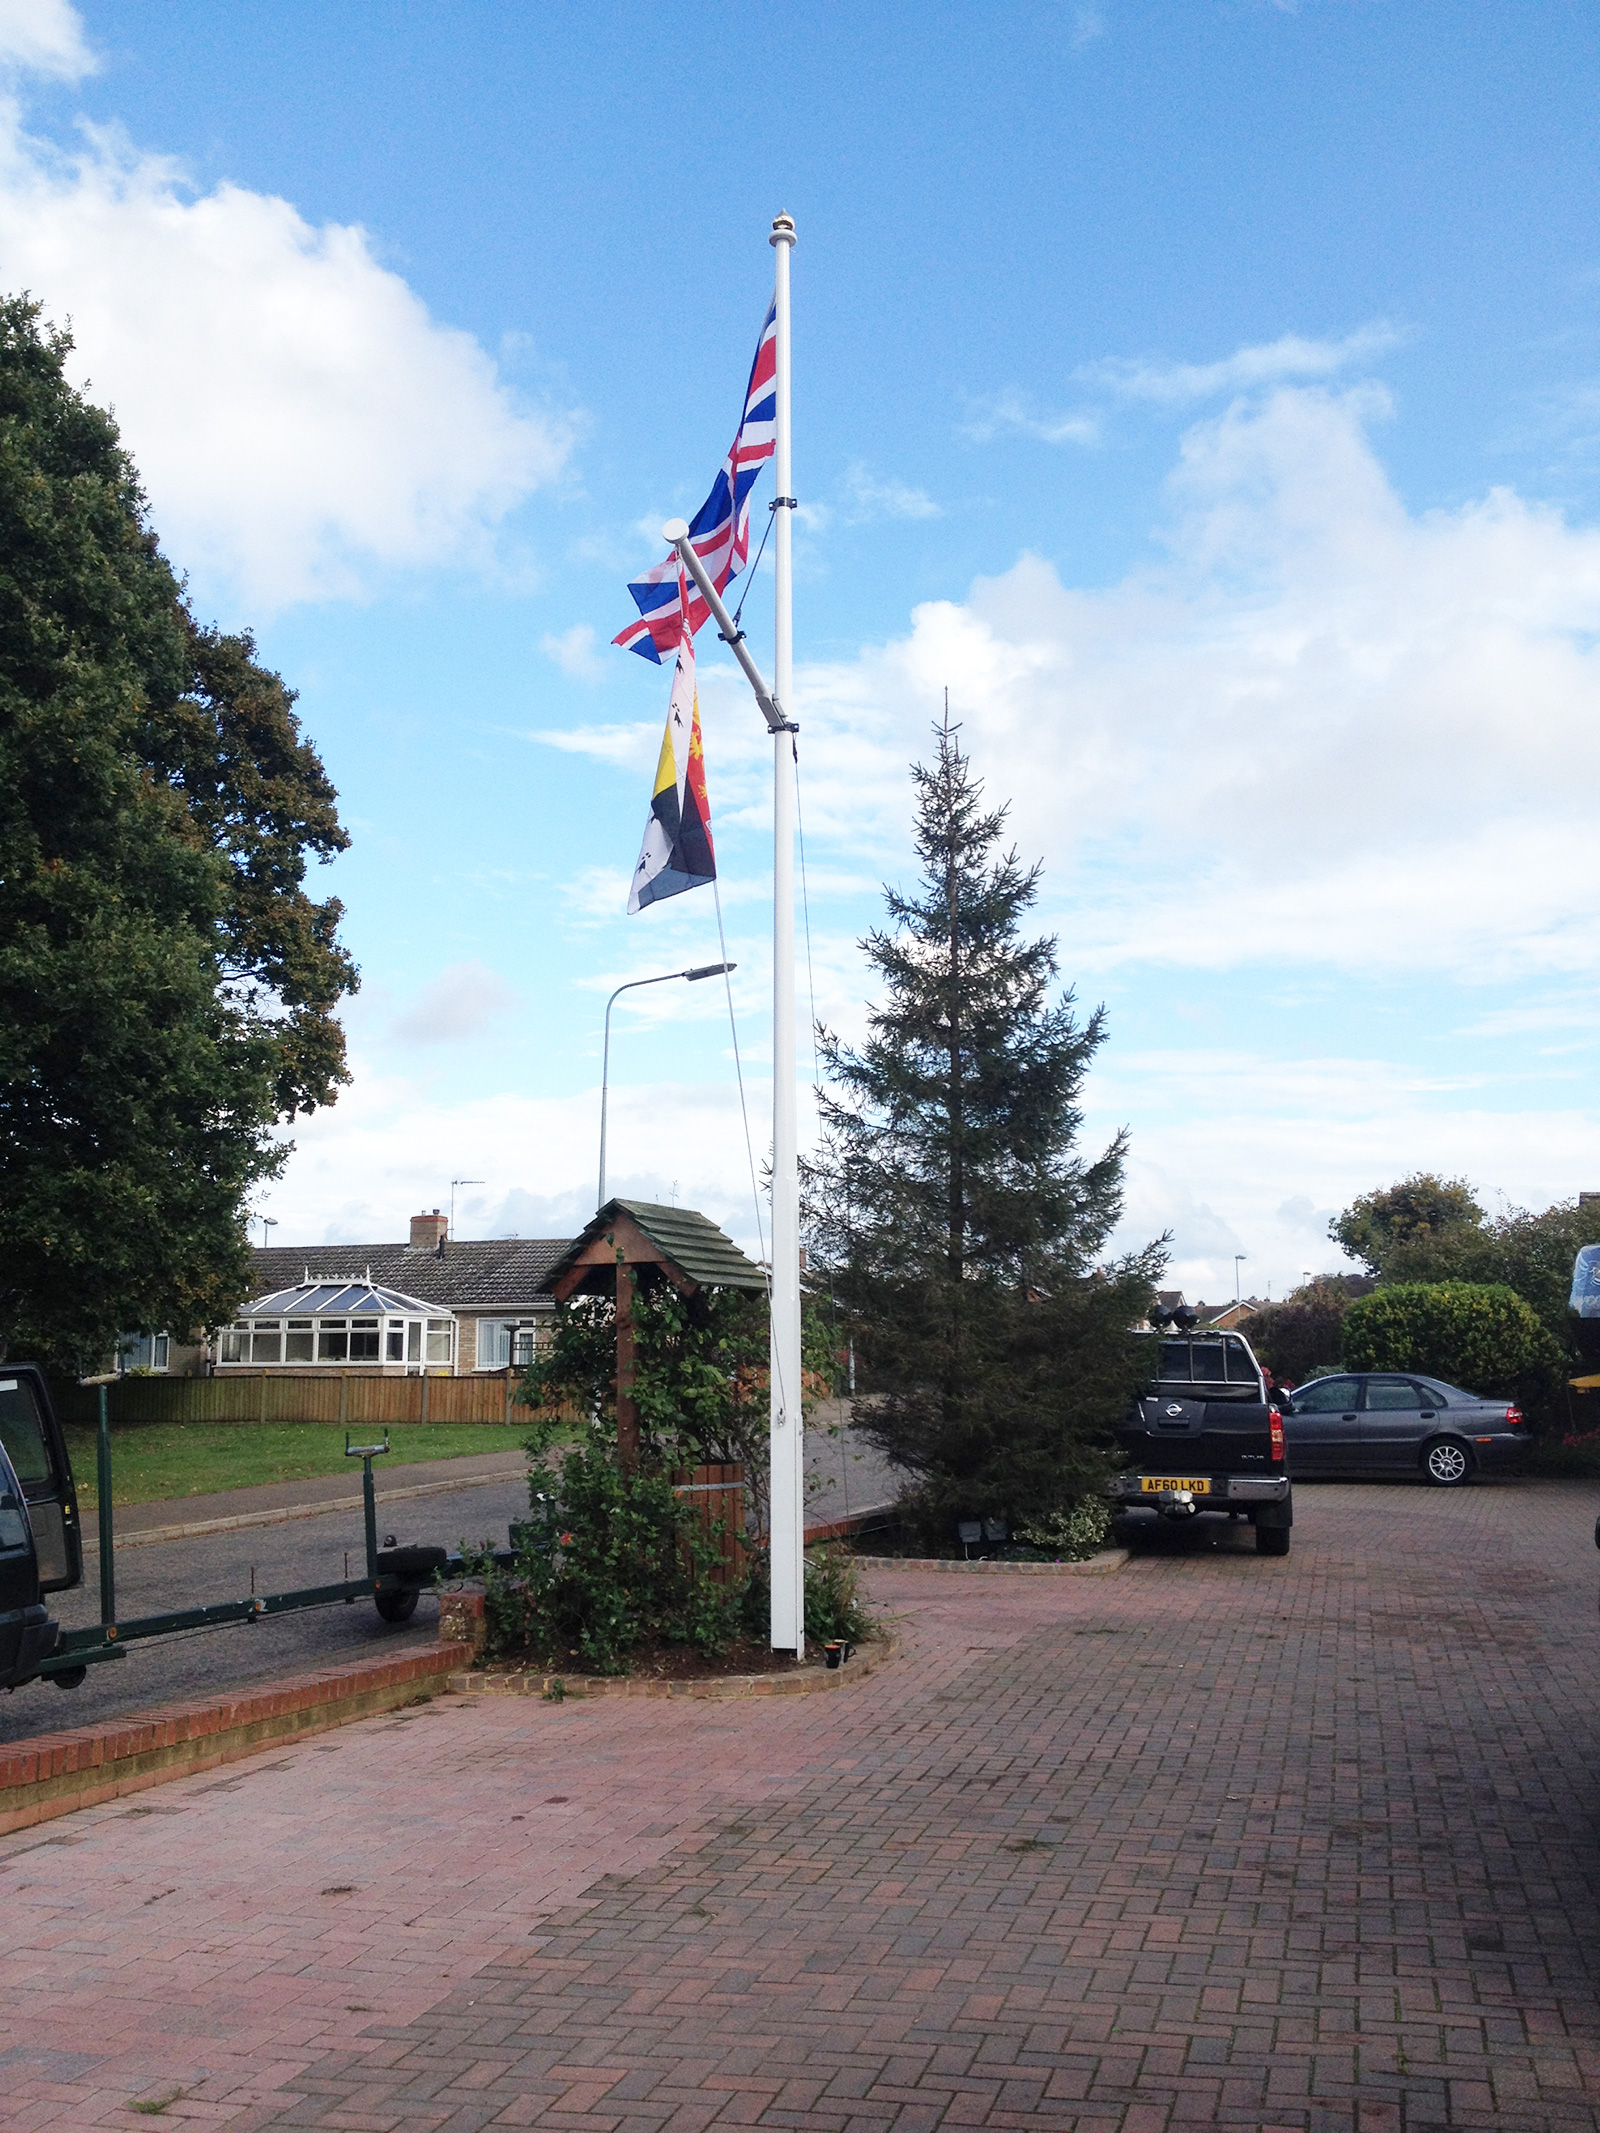 Traditional, Handcrafted Quality Wooden Flagpoles